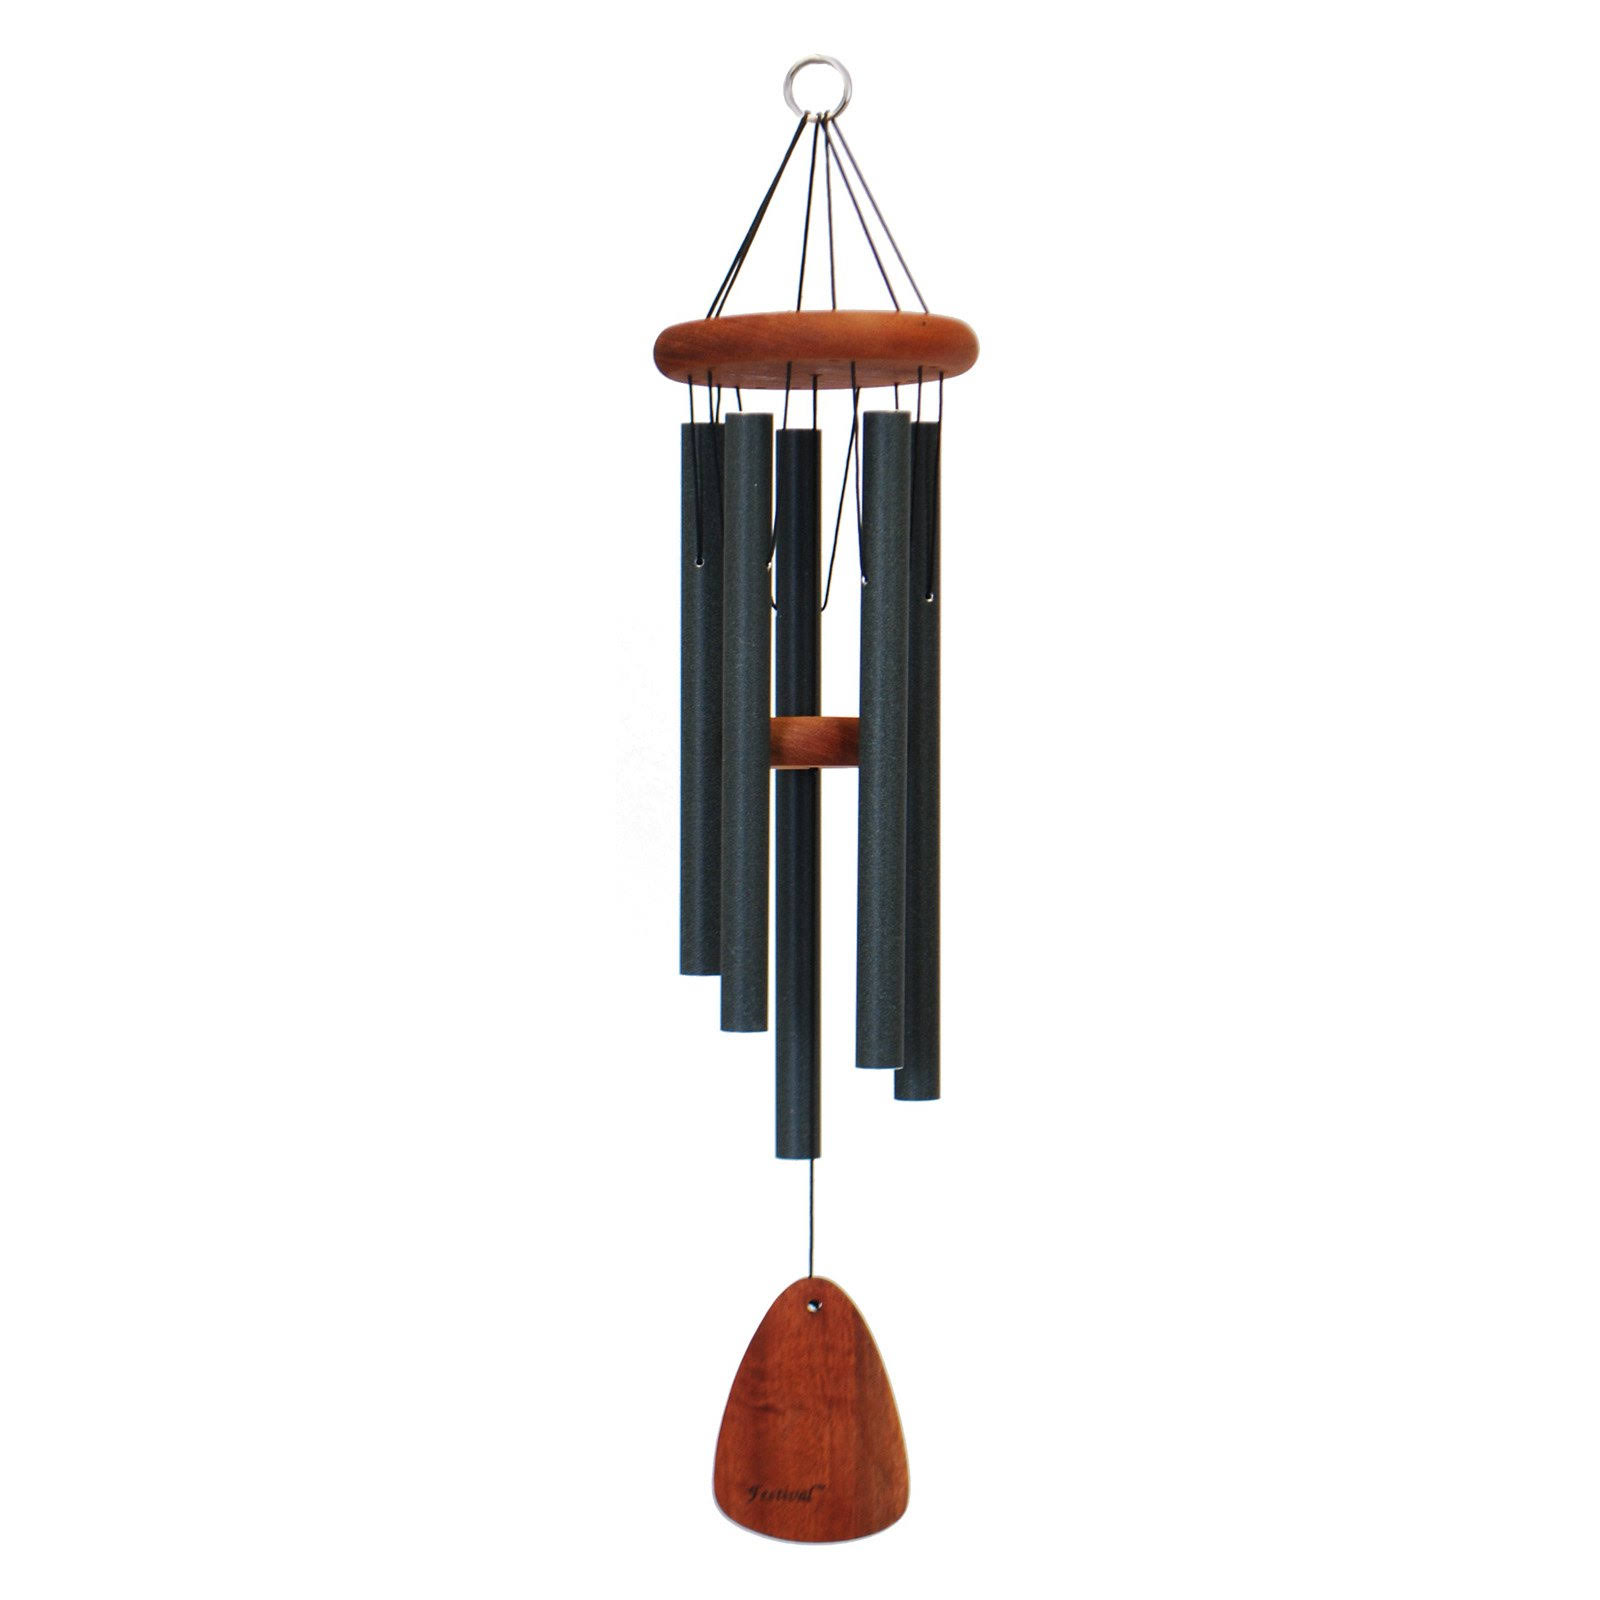 Festival 28 in. Wind Chime, Green